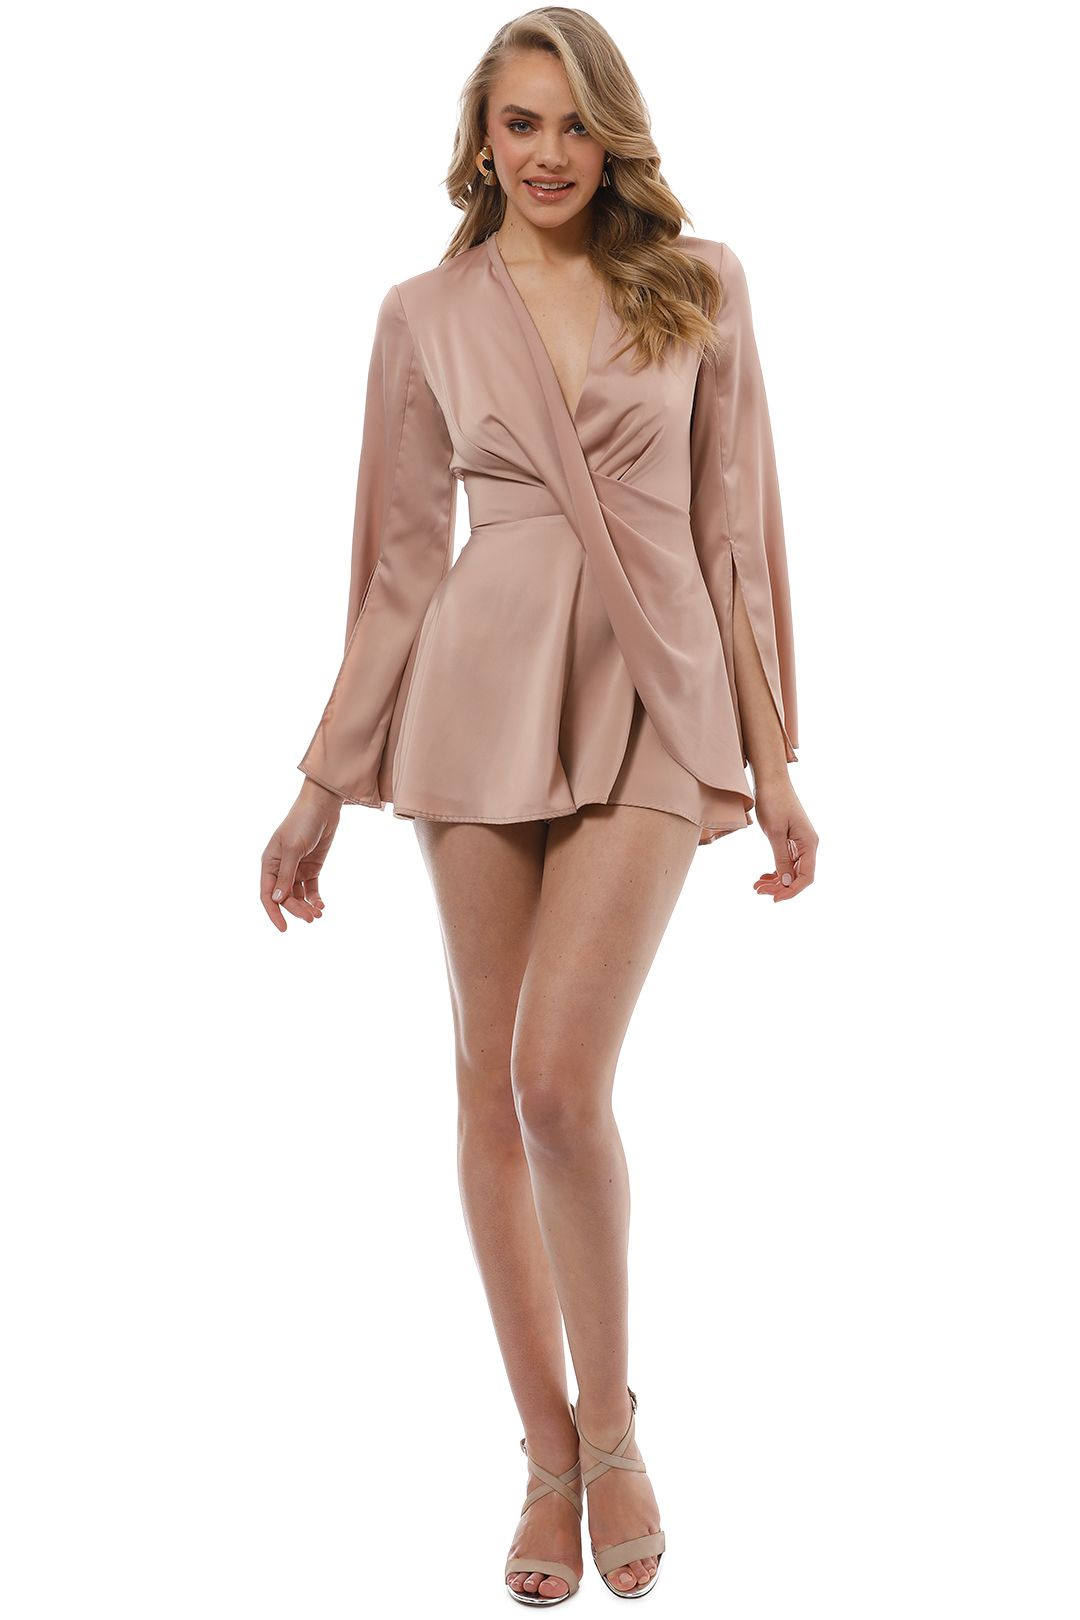 CMEO Collective - Influential Playsuit - Sand - Front